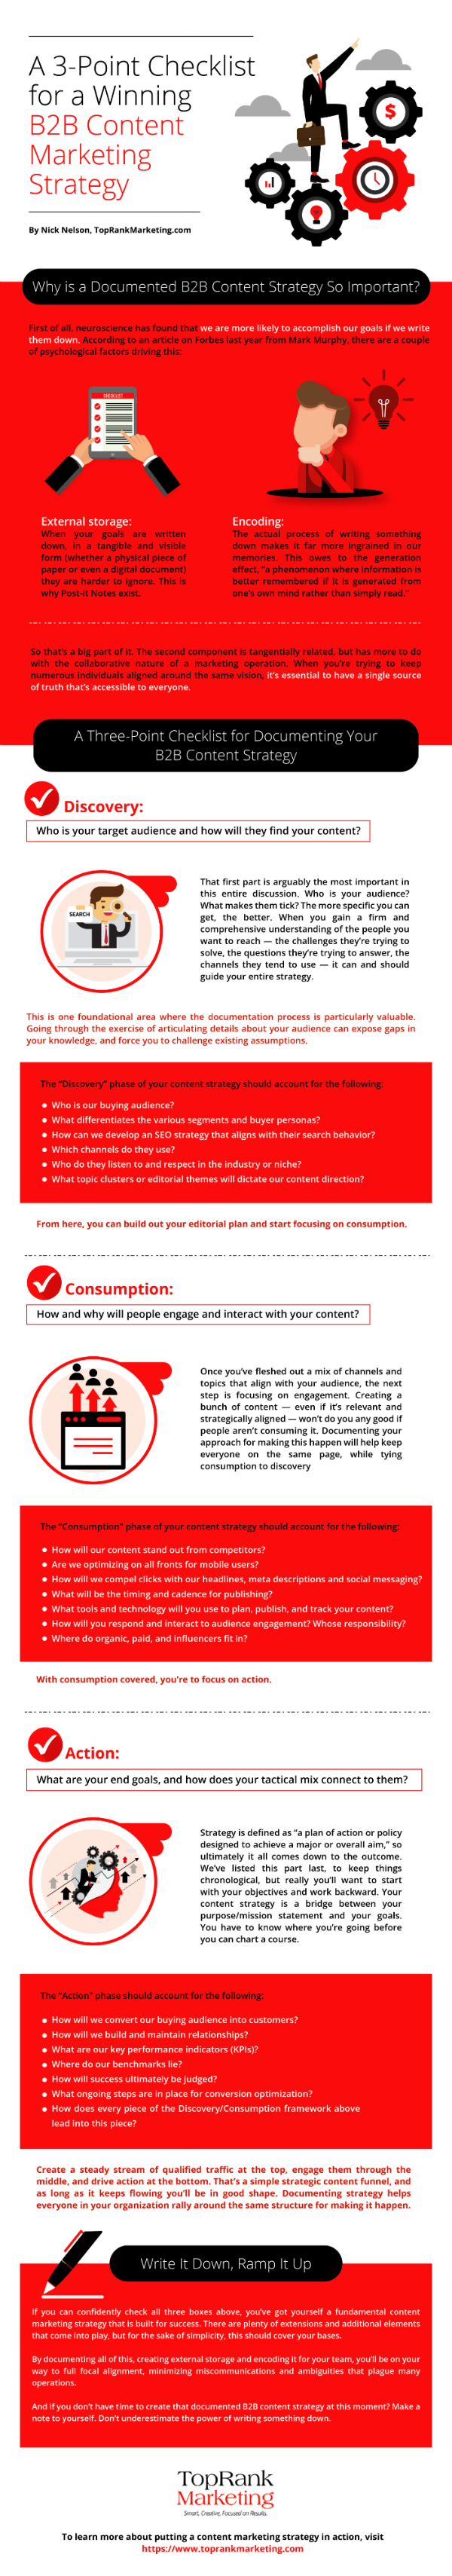 documented content marketing strategy infographic